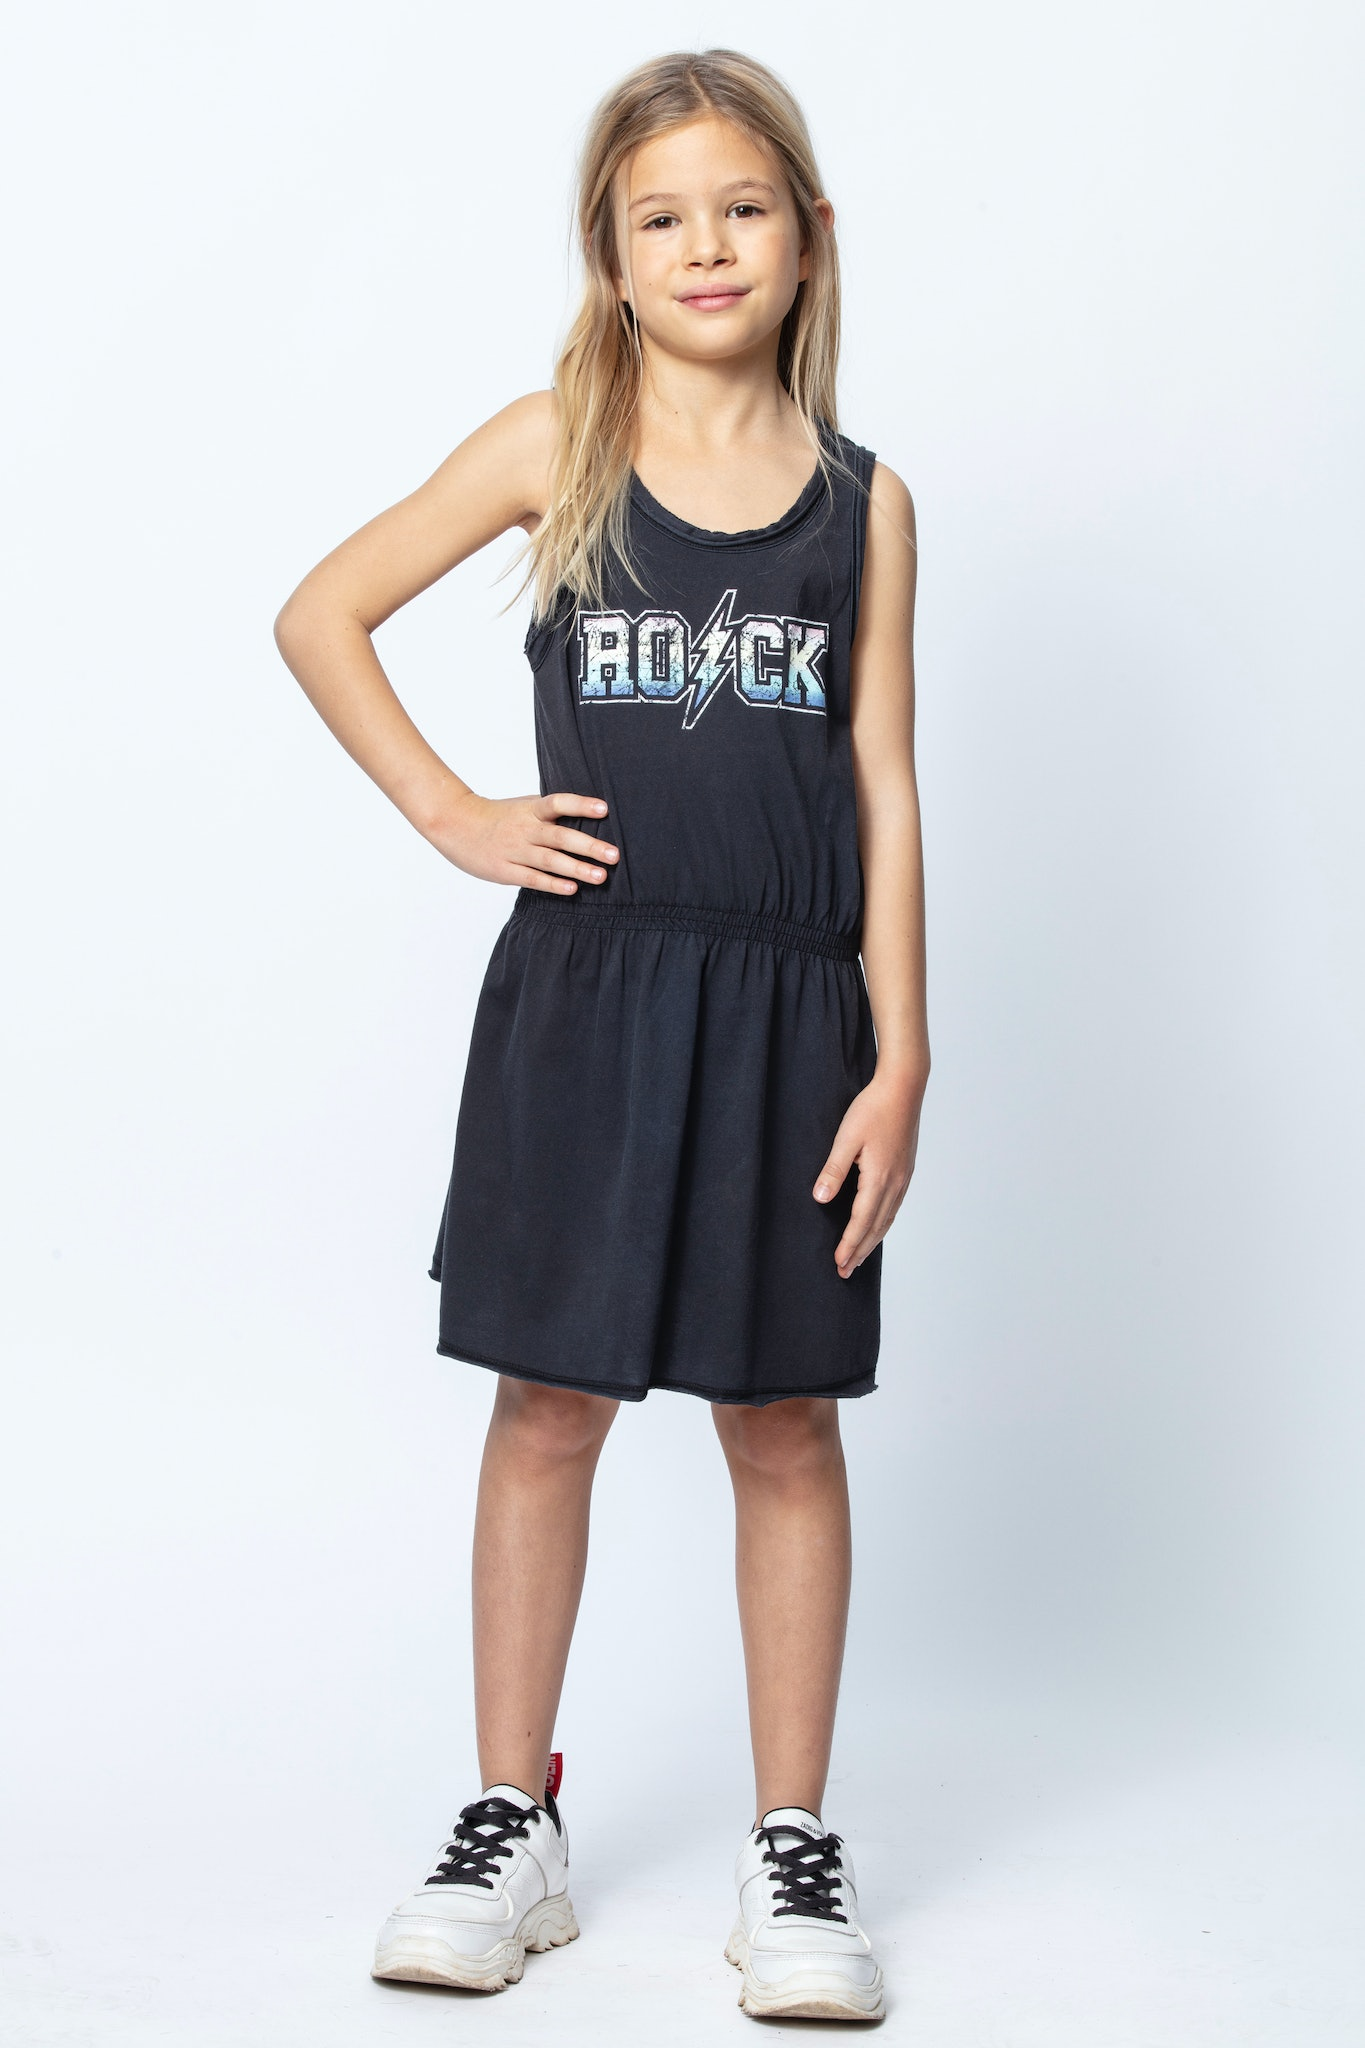 KIDS' HILDANA DRESS